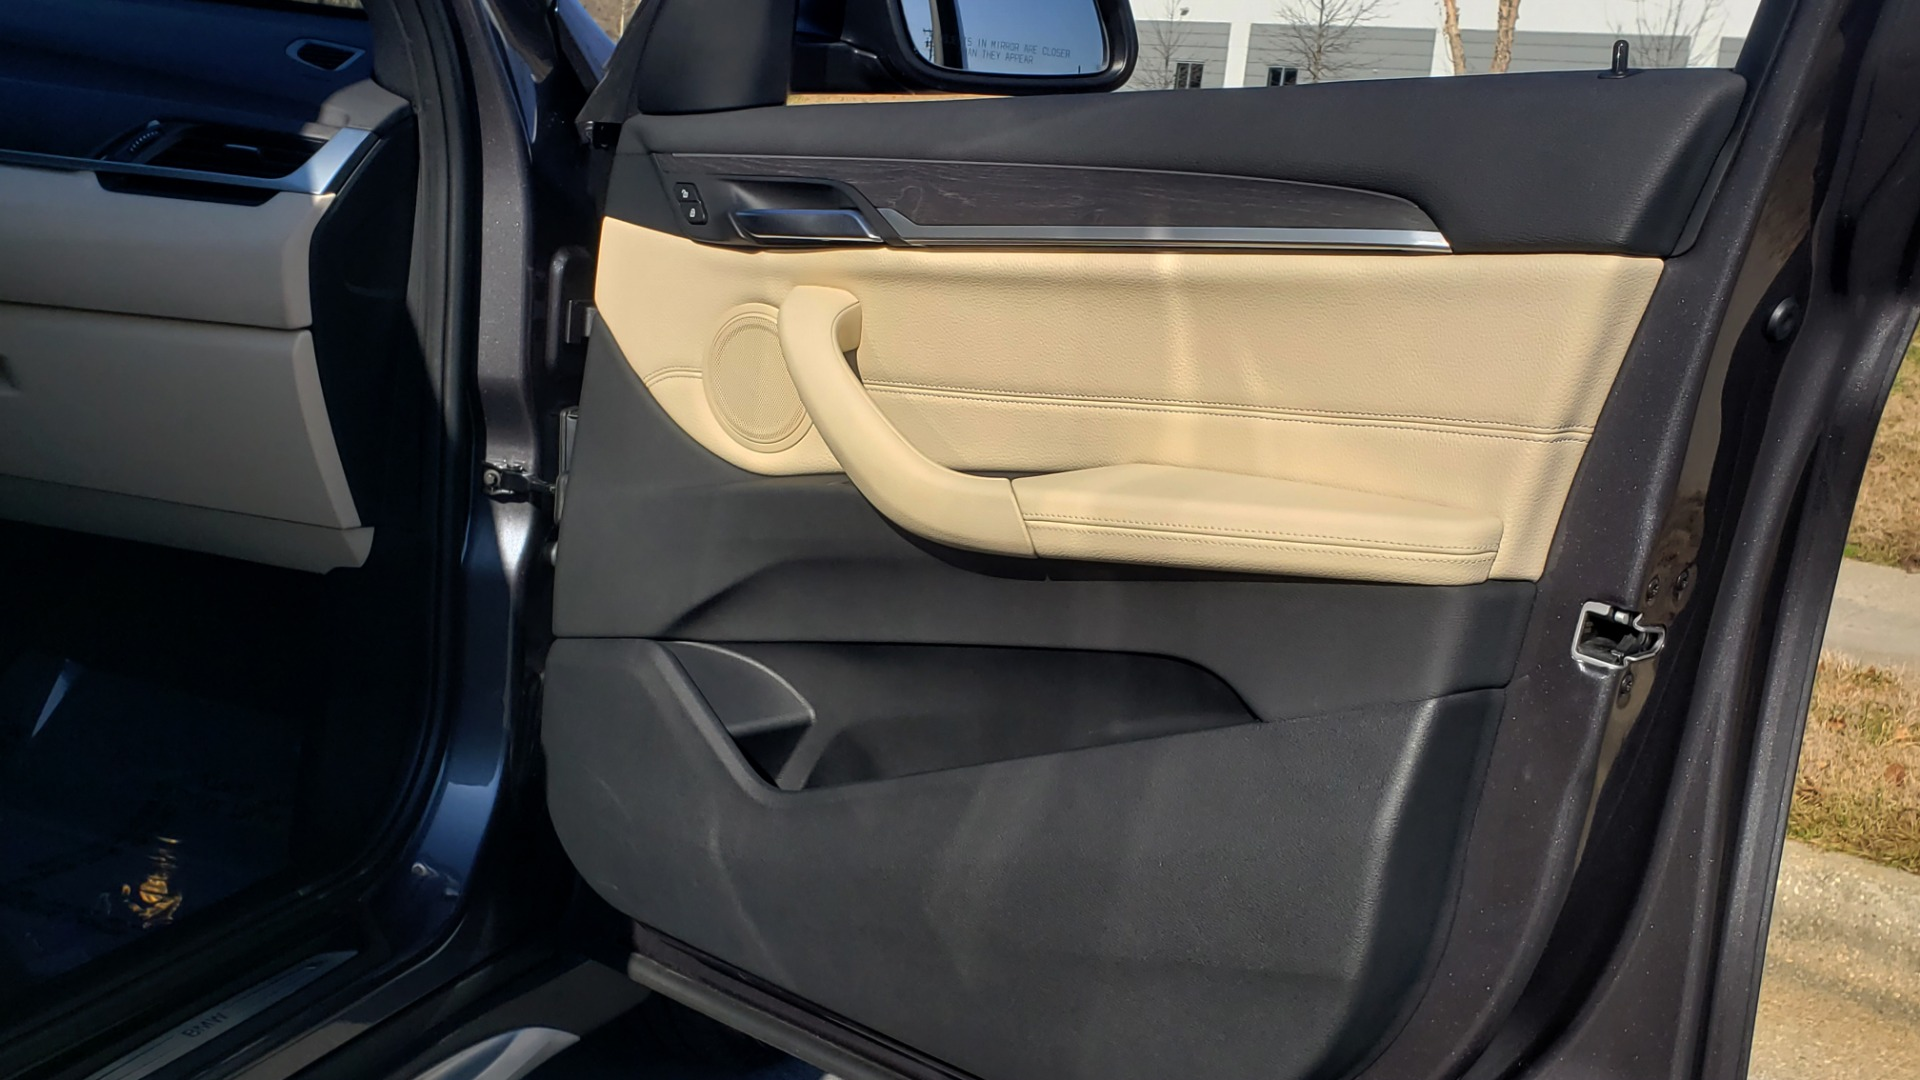 Used 2017 BMW X1 XDRIVE28I / PREM / TECH / DRVR ASST PLUS / COLD WTHR / REARVIEW for sale $26,995 at Formula Imports in Charlotte NC 28227 65